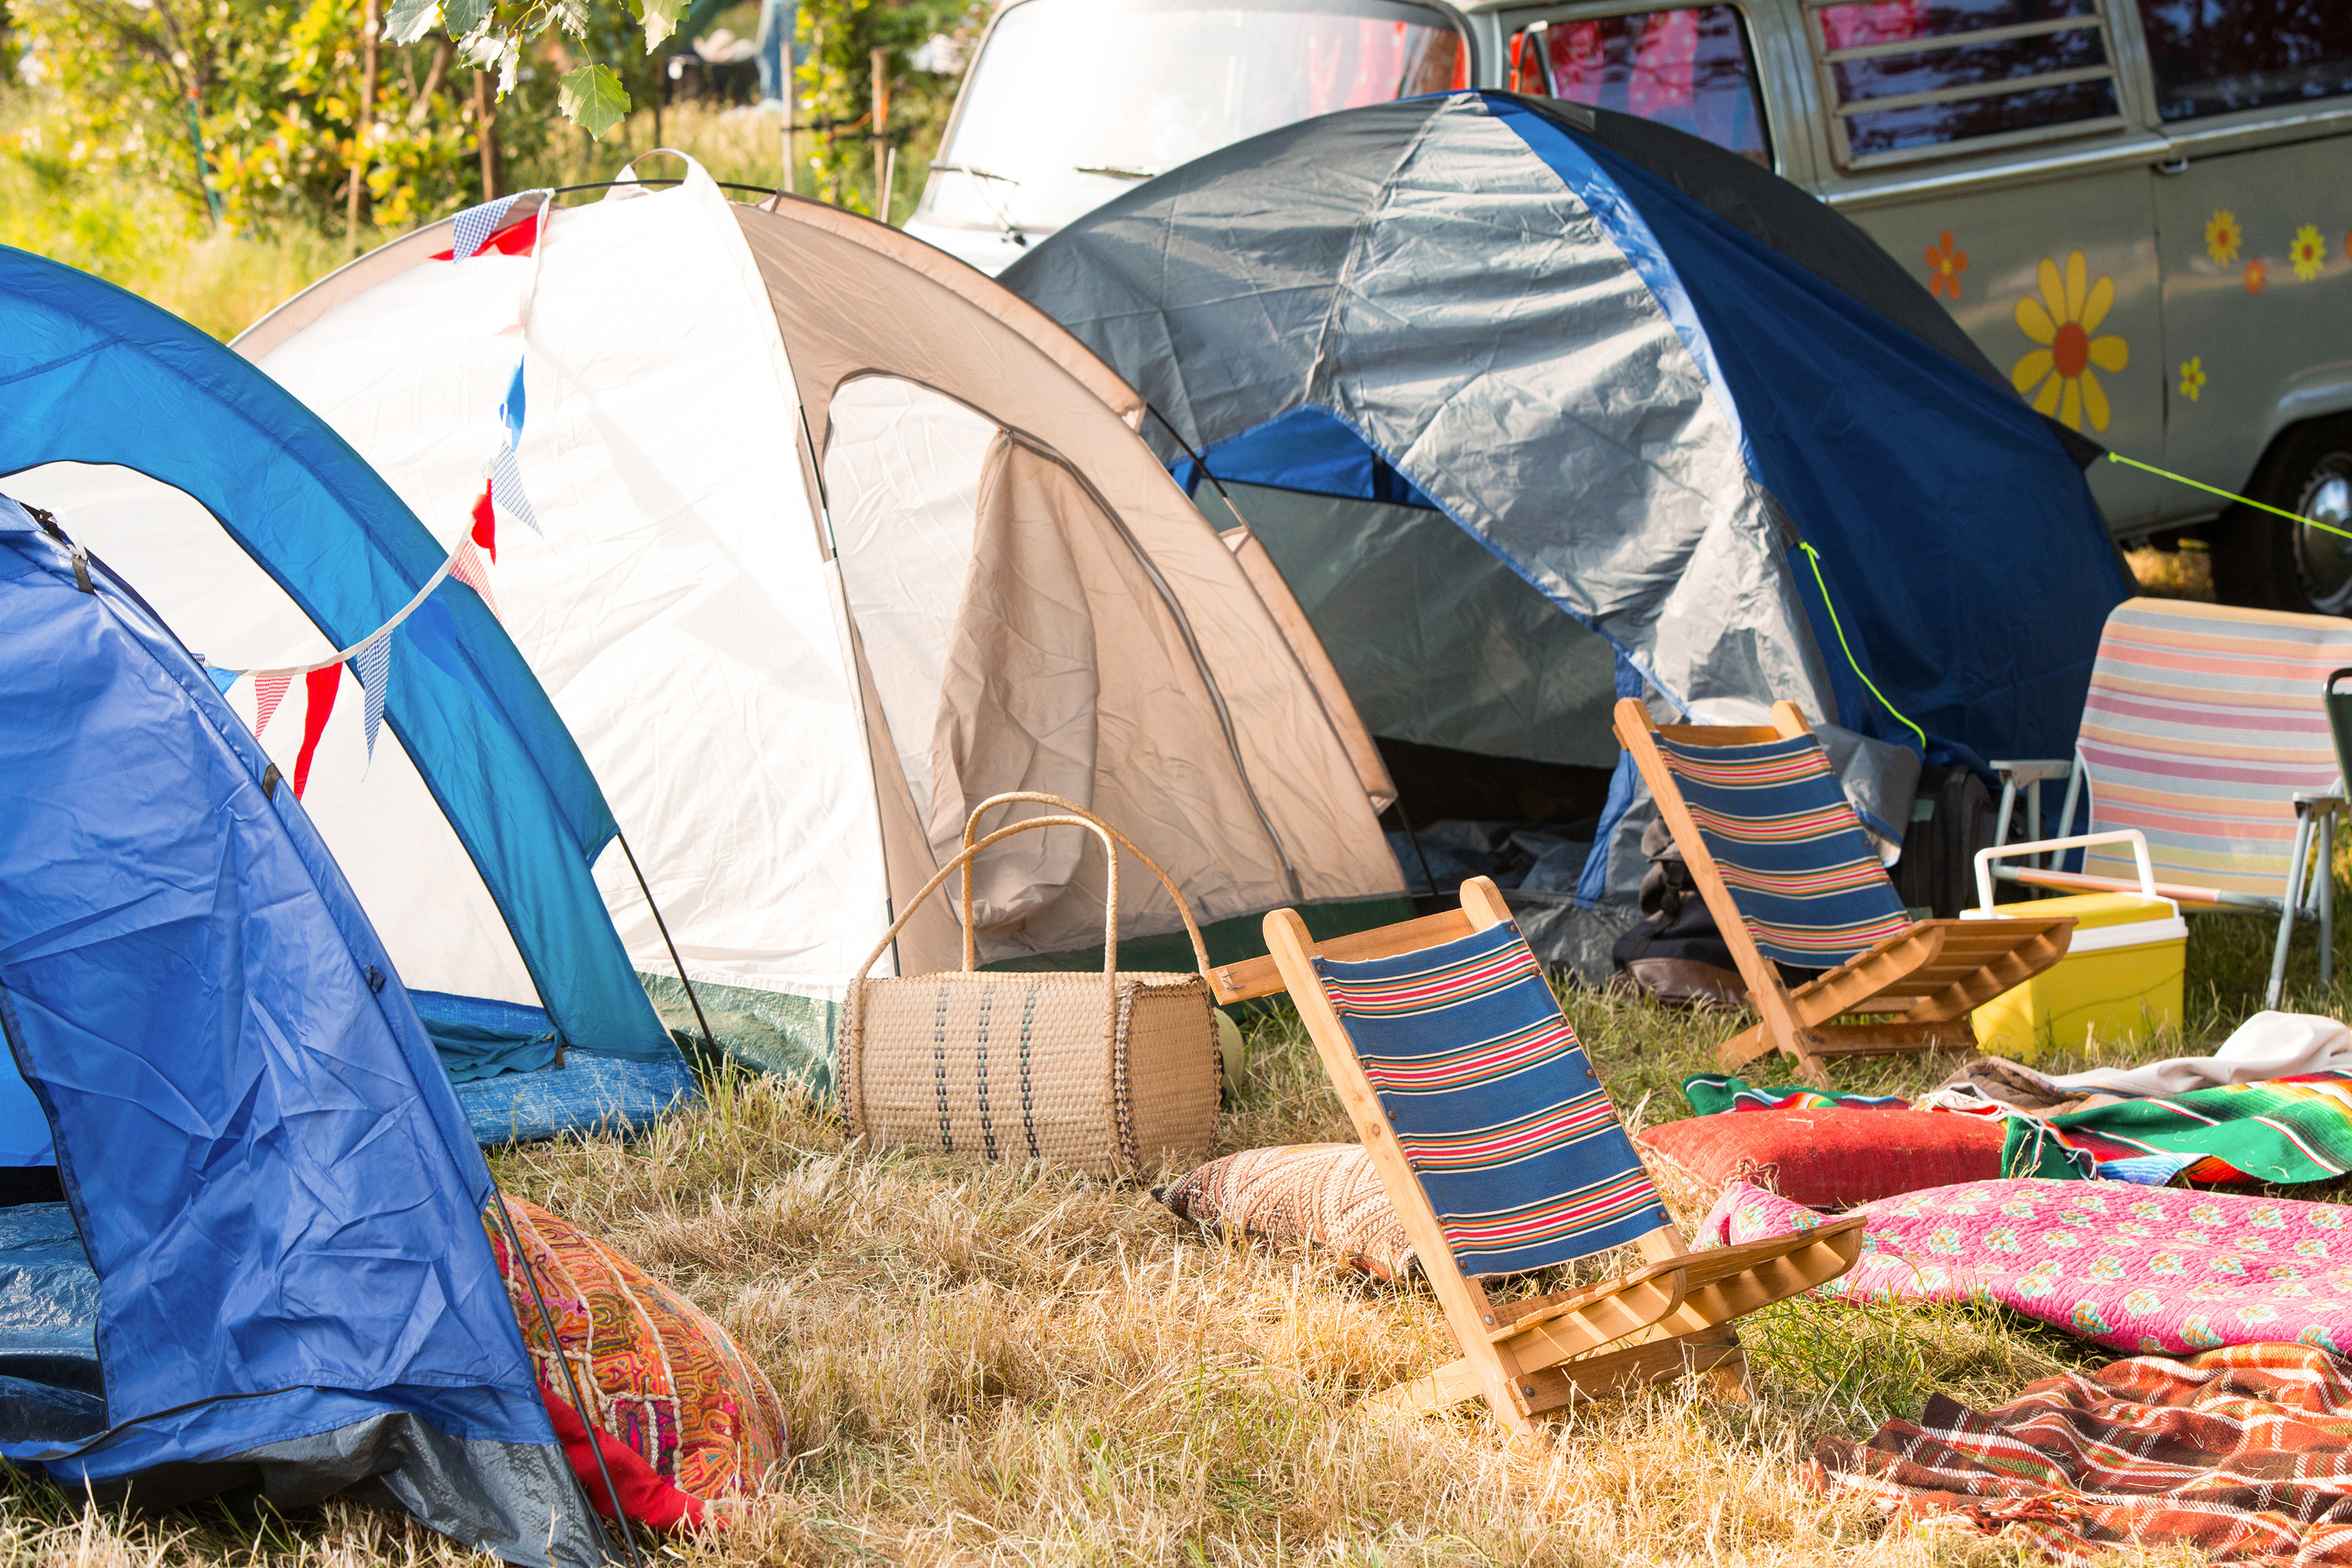 Fest dressed: six music festival essentials